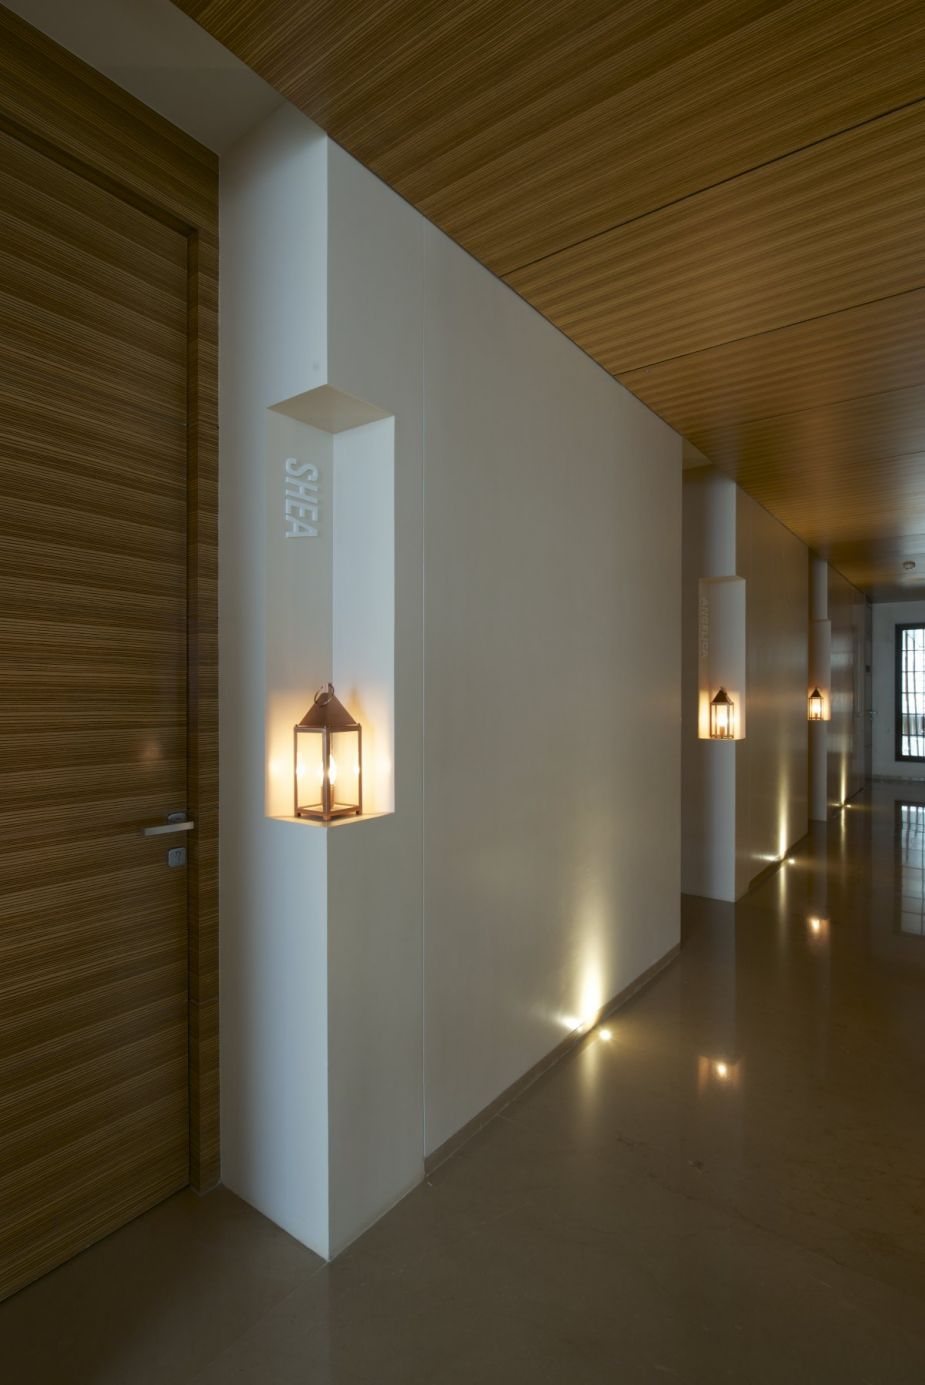 Architecture luxurious day spa interior with clean and wood accent corridor with white wall and wood ceiling and door